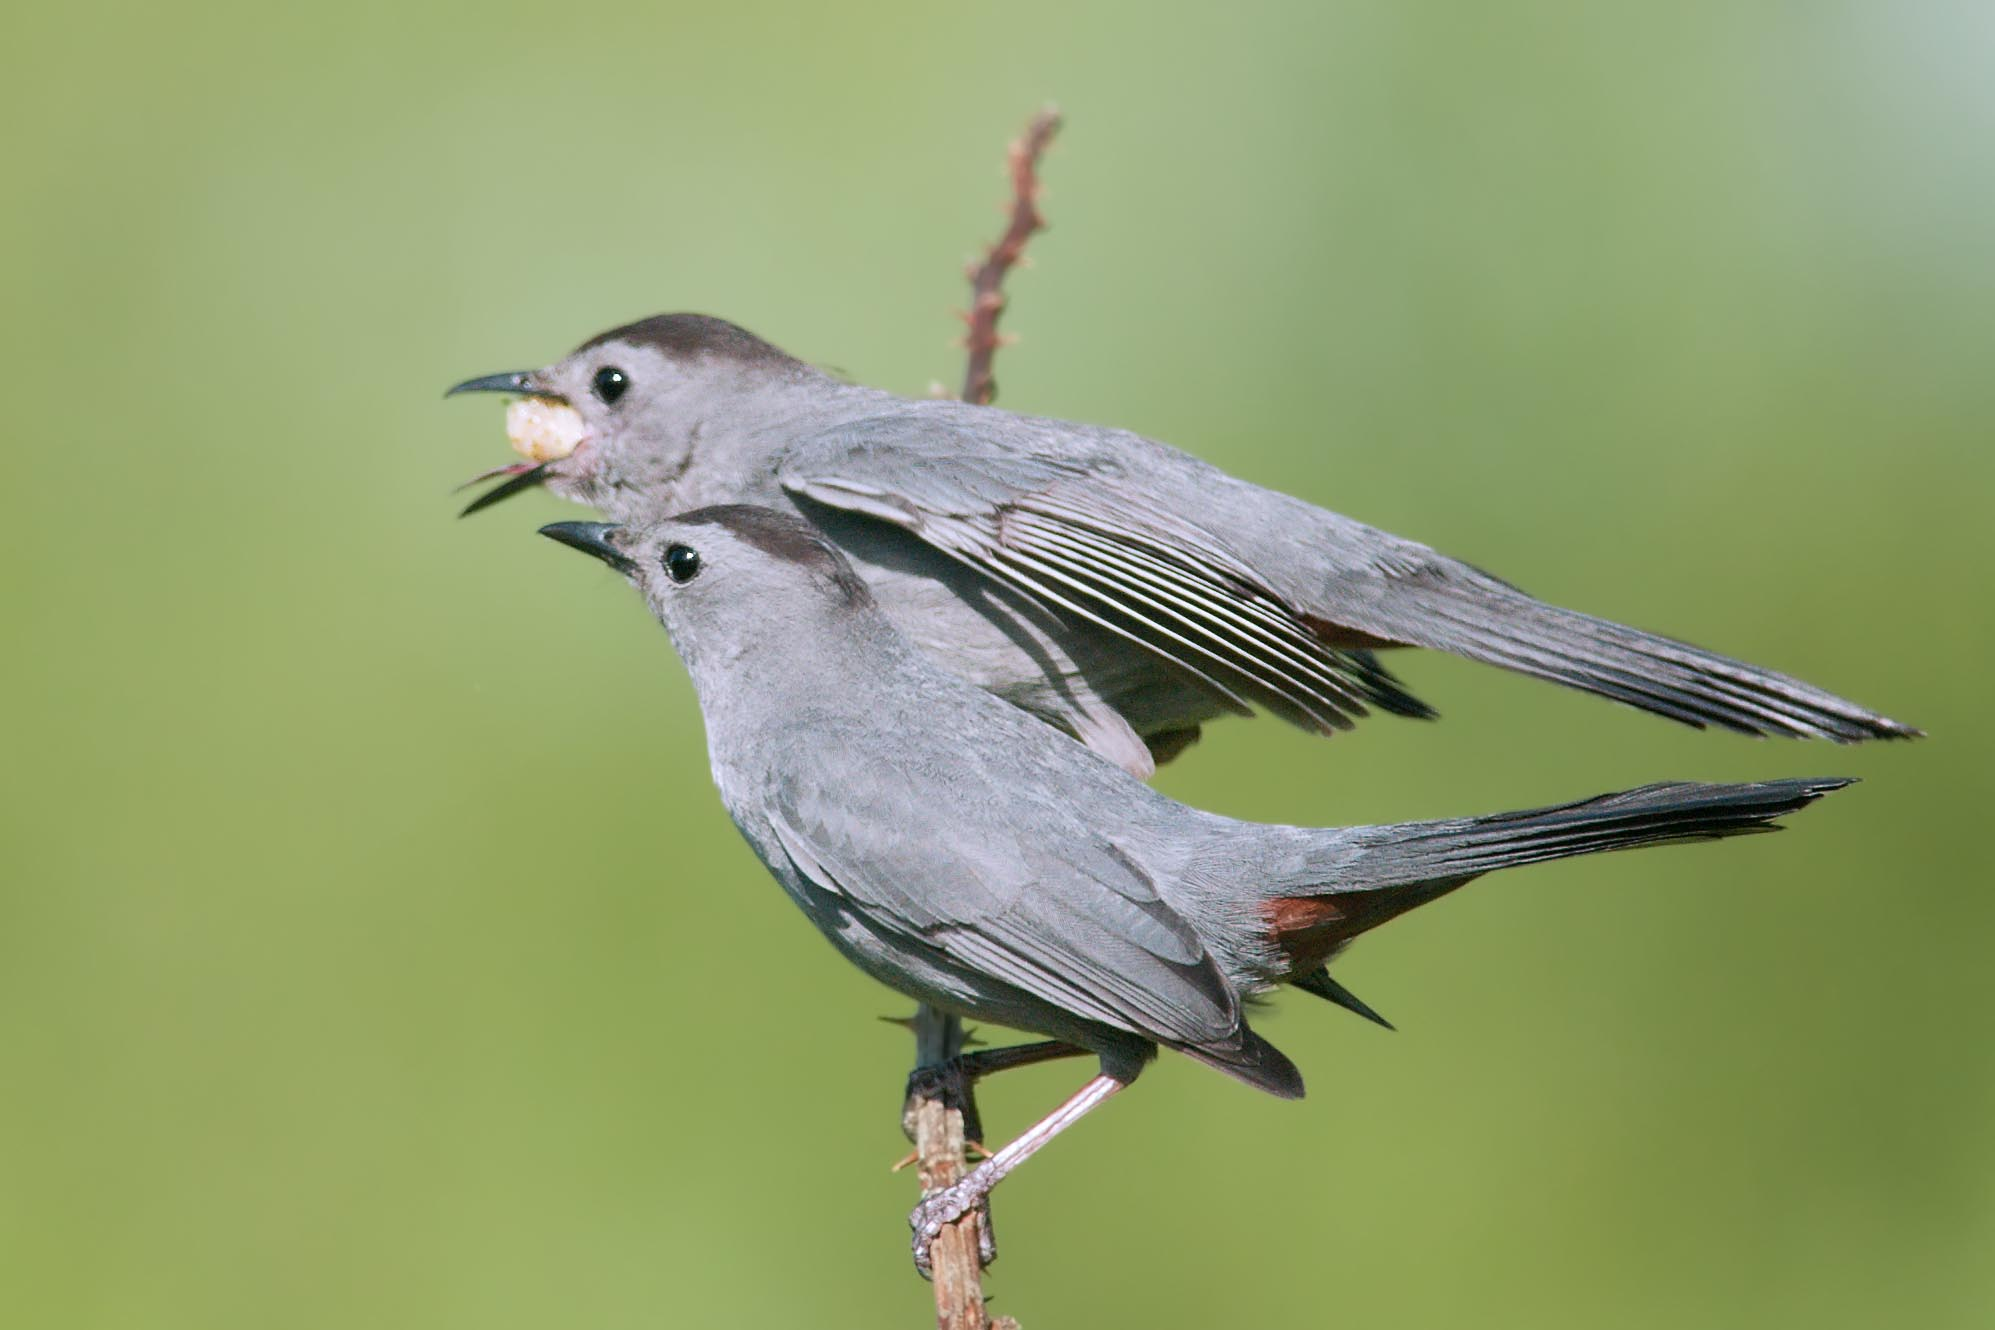 """- Gray Catbird (Dumetella carolinensis)Gray Catbirds live in dense, shrubby areas. Their diet consists of insects, fruit, berries, and food at bird feeders. They have a wingspan of 8.7-11.8 in. and weigh 0.8-2 oz. Gray Catbirds are able to mimic some other birds' calls, but their unmistakable call sounds like a kitten's """"mew."""" They are protected on the US Migratory Bird list.Photo Credits: Kelly Colgan Azar"""